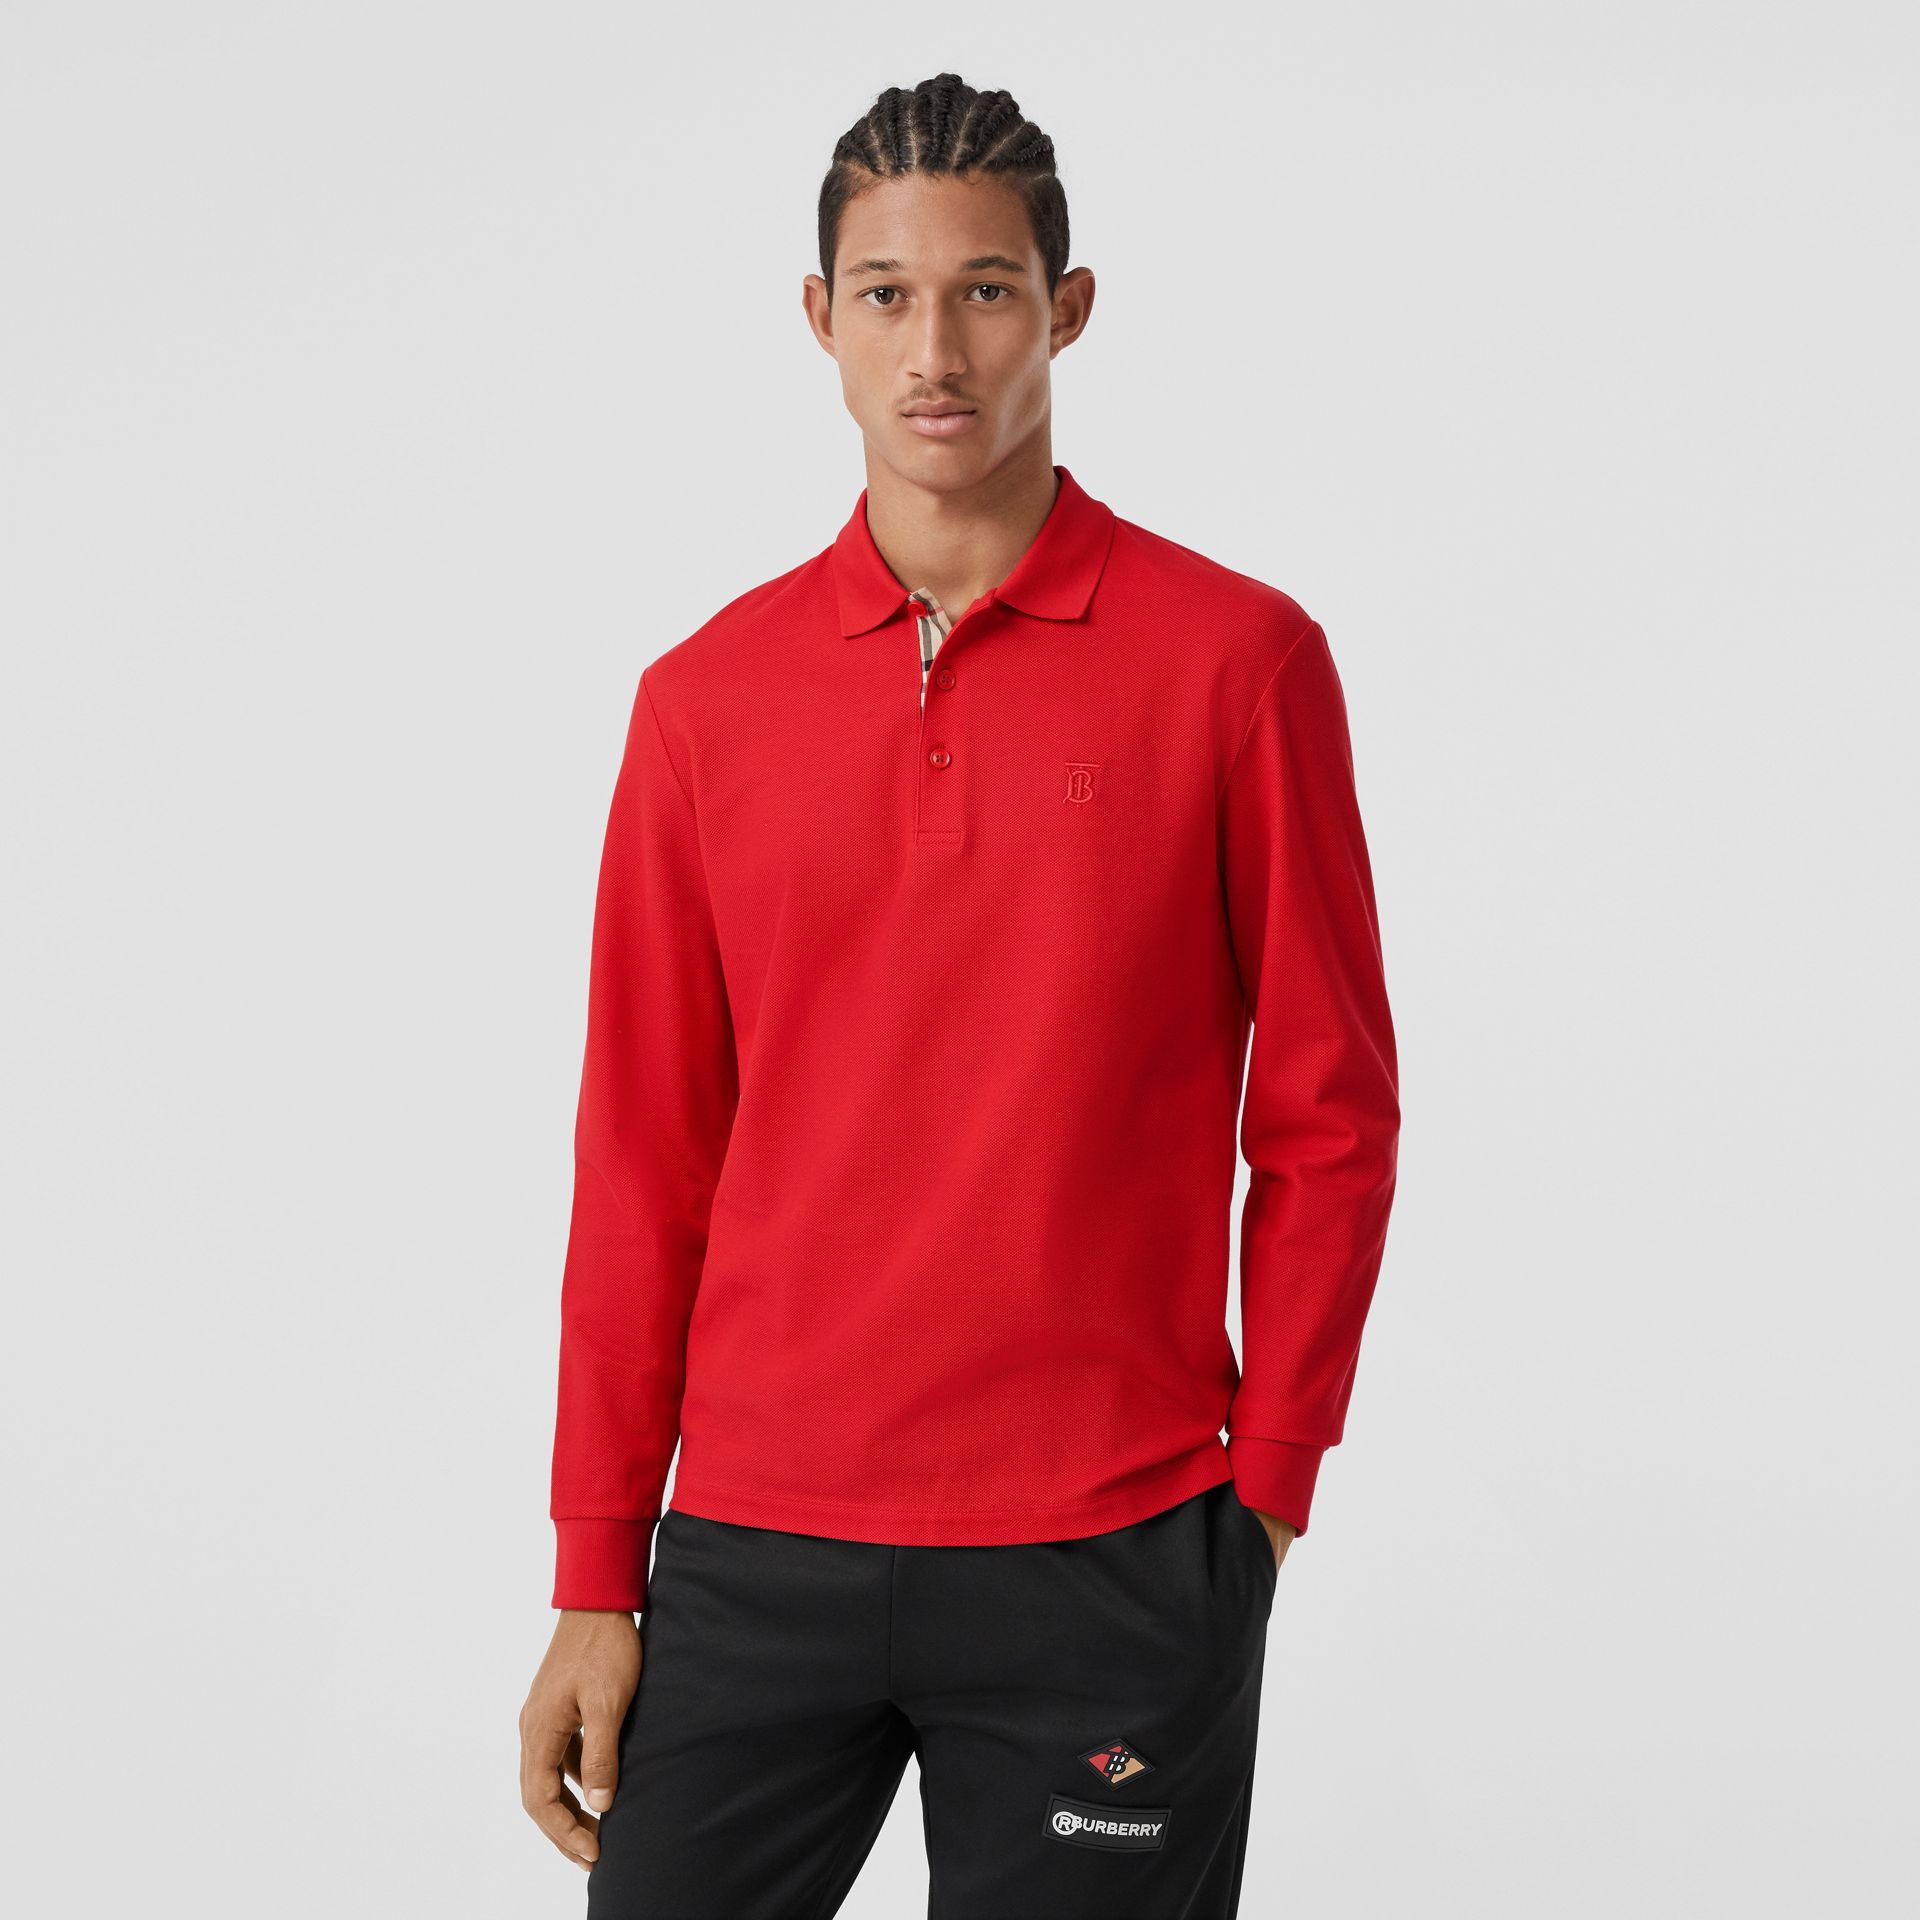 Long-sleeve Monogram Motif Cotton Piqué Polo Shirt in Bright Red - Men | Burberry - gallery image 4